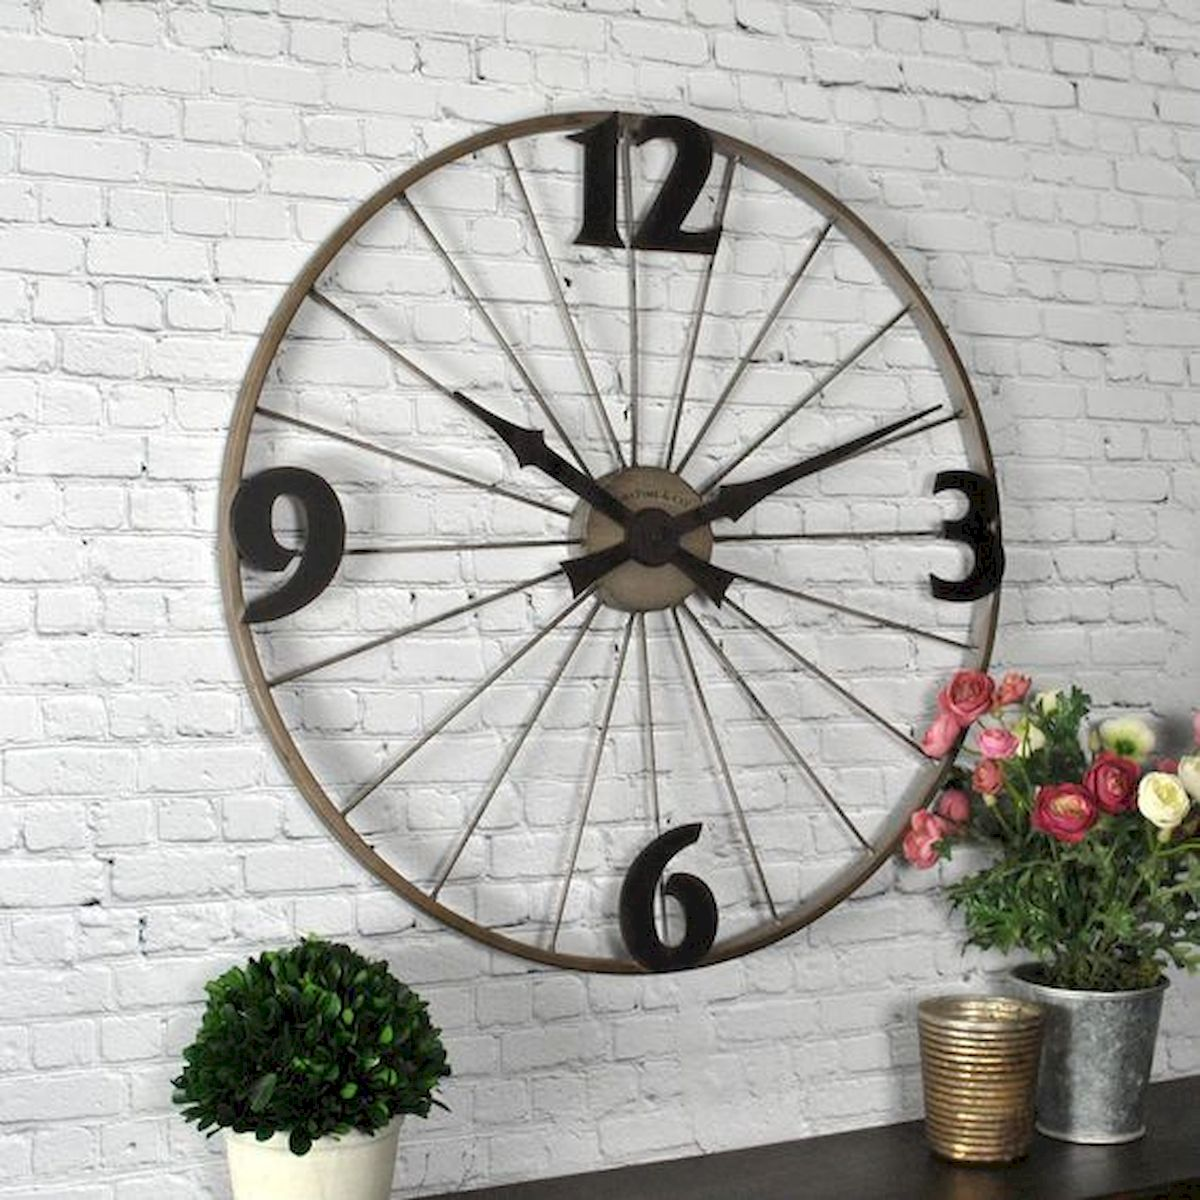 65 Stunning DIY Recycled and Upcycling Projects Ideas (52)